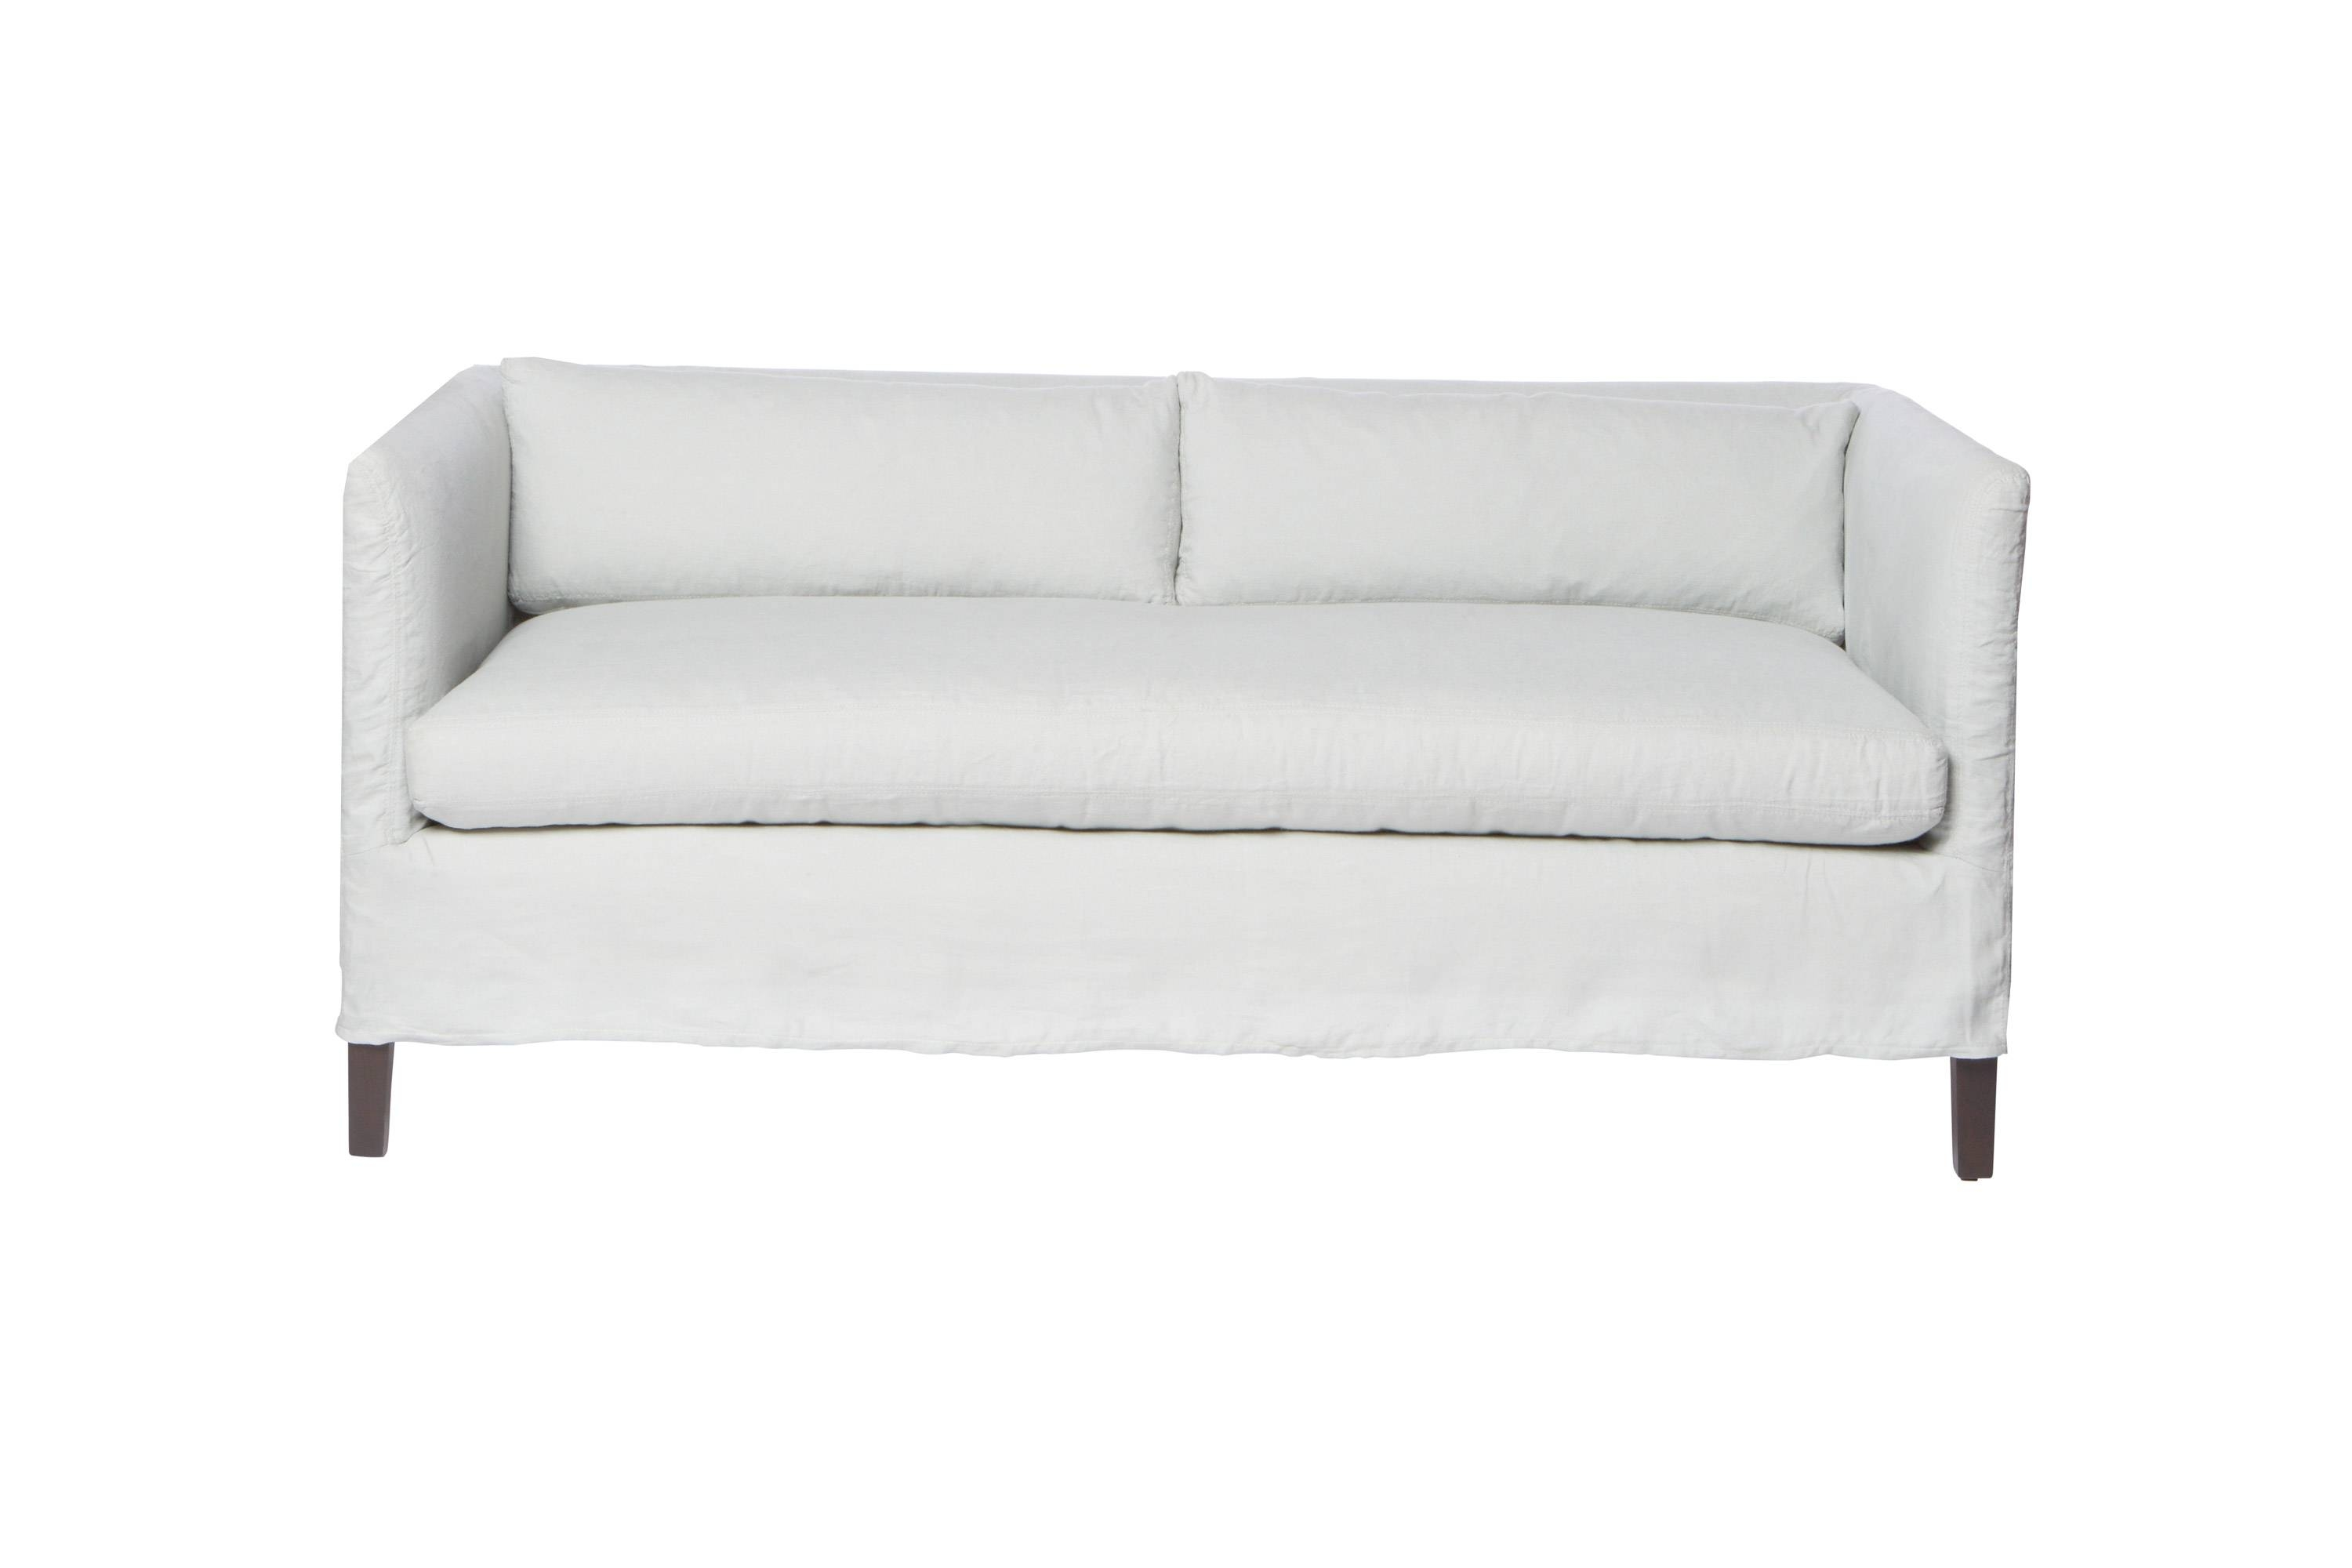 Sofas in Armless Sofa Slipcovers (Image 12 of 15)